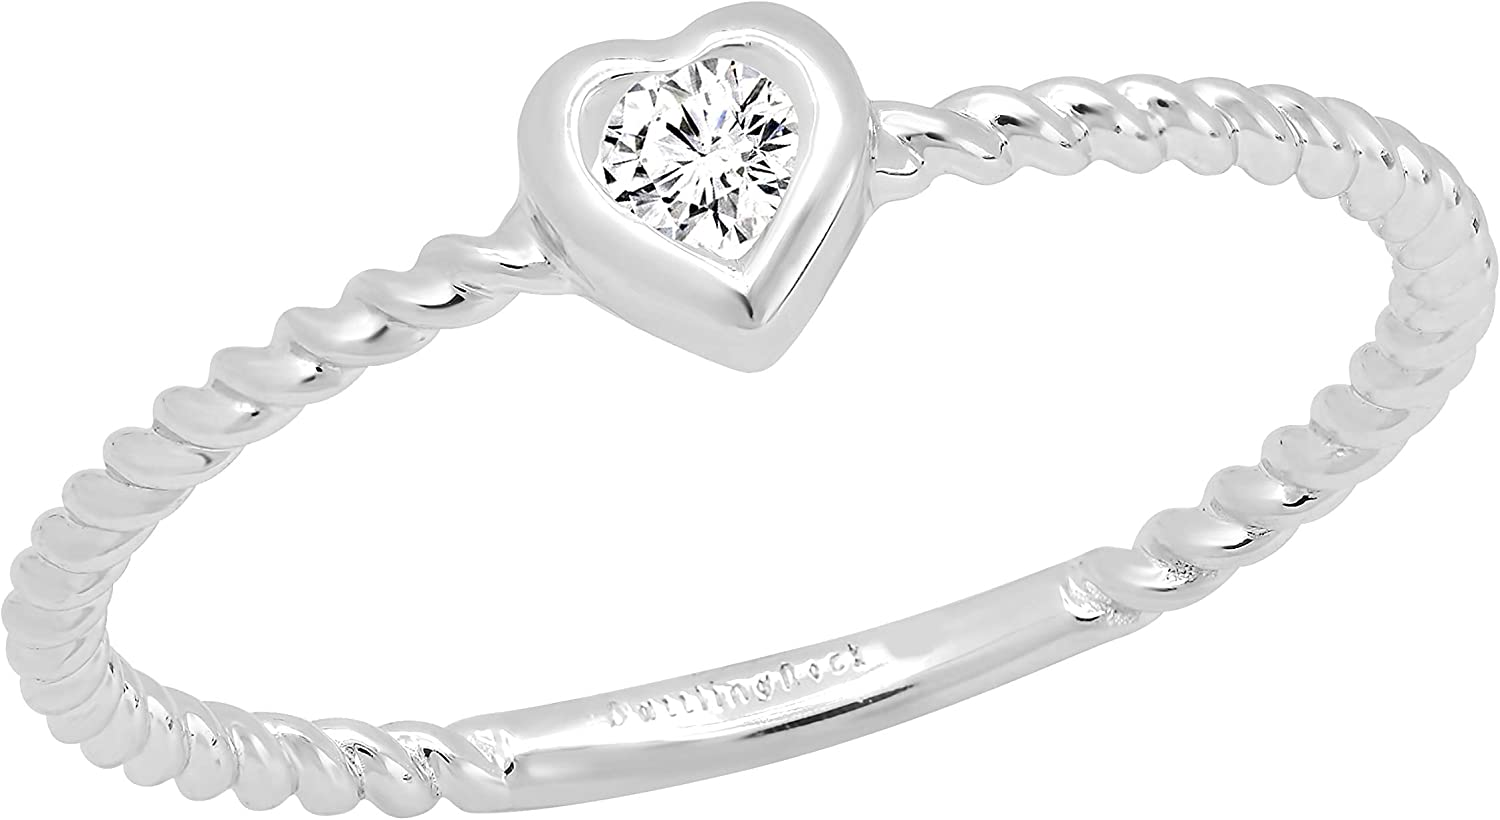 Max 67% OFF Dazzlingrock Collection 0.08 Carat ctw Grown Round White D Max 41% OFF Lab